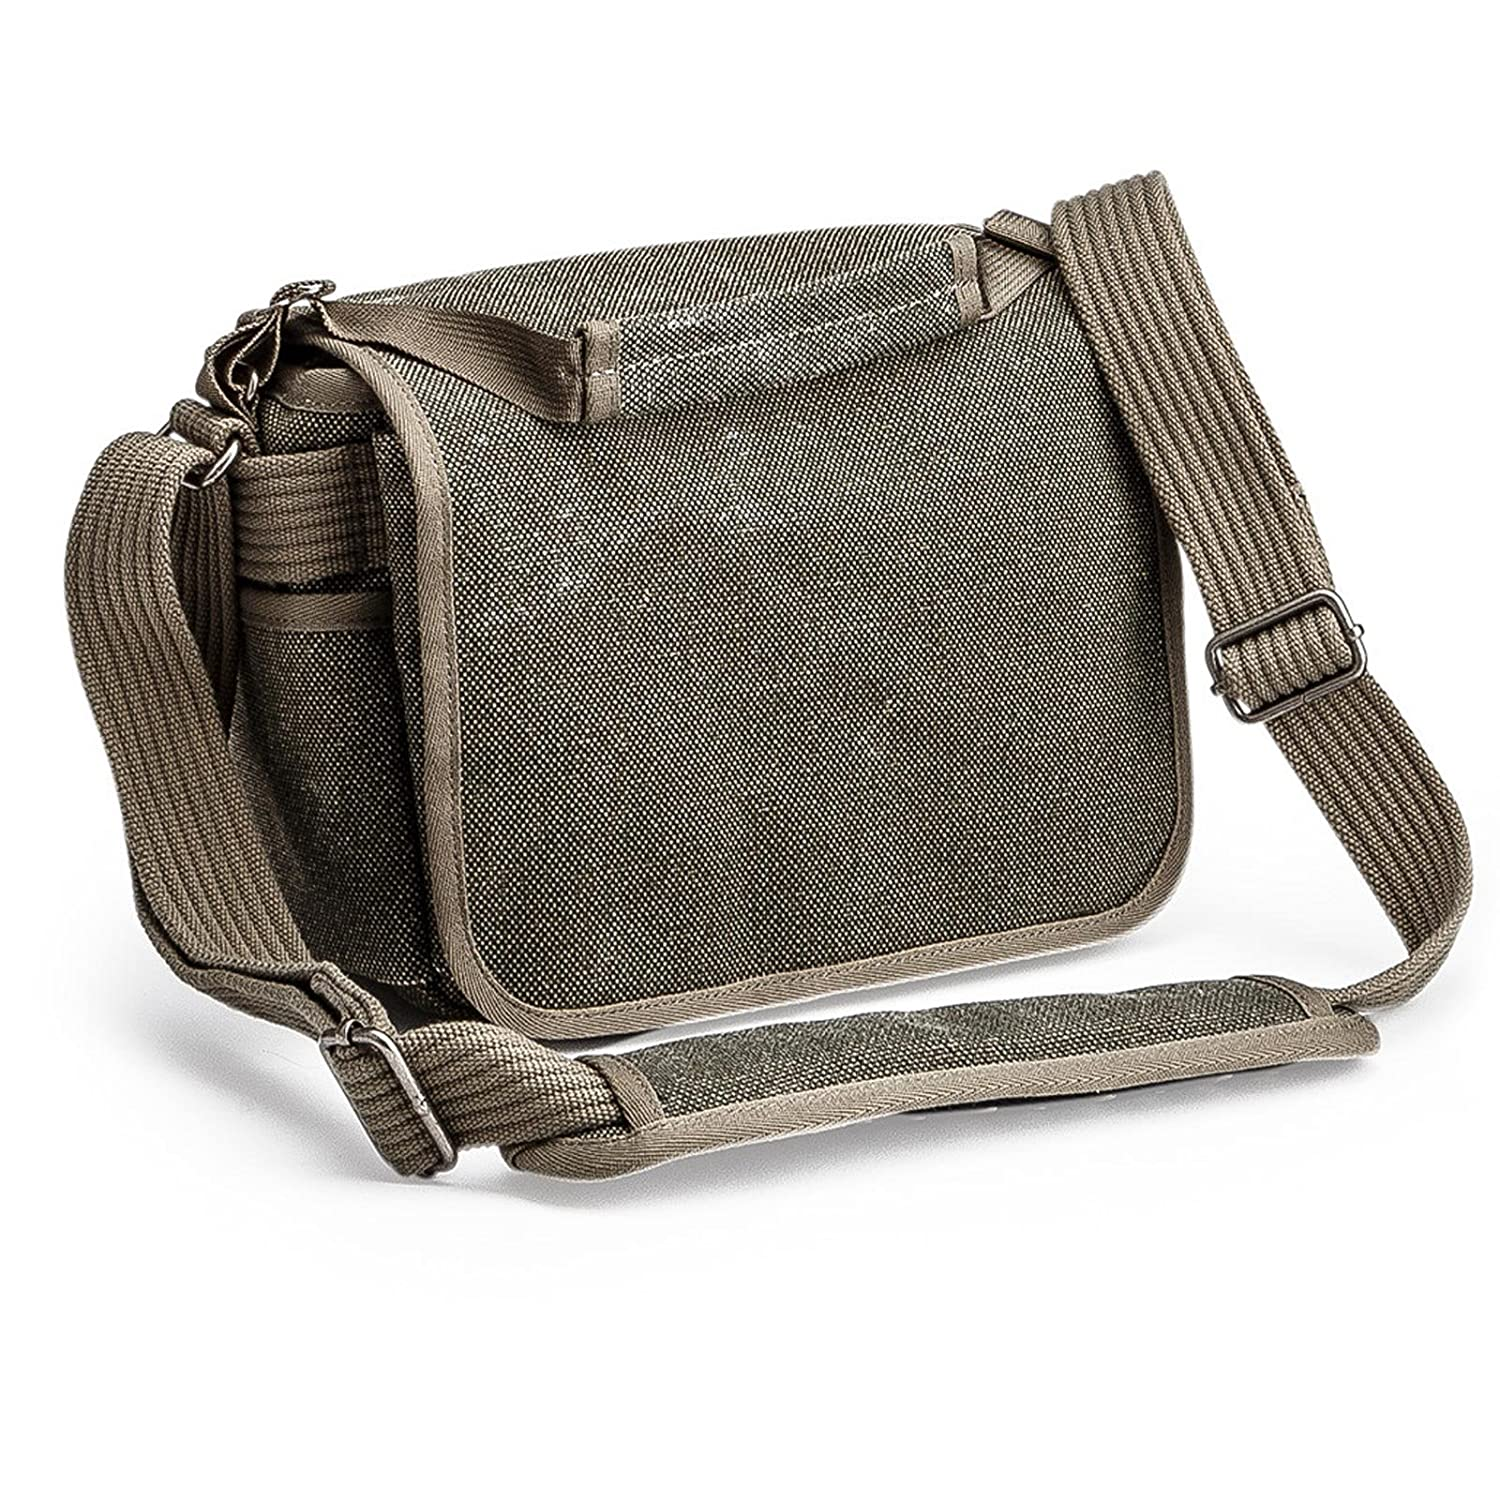 Think Tank Retrospective 5 Shoulder Bag (Pinestone)